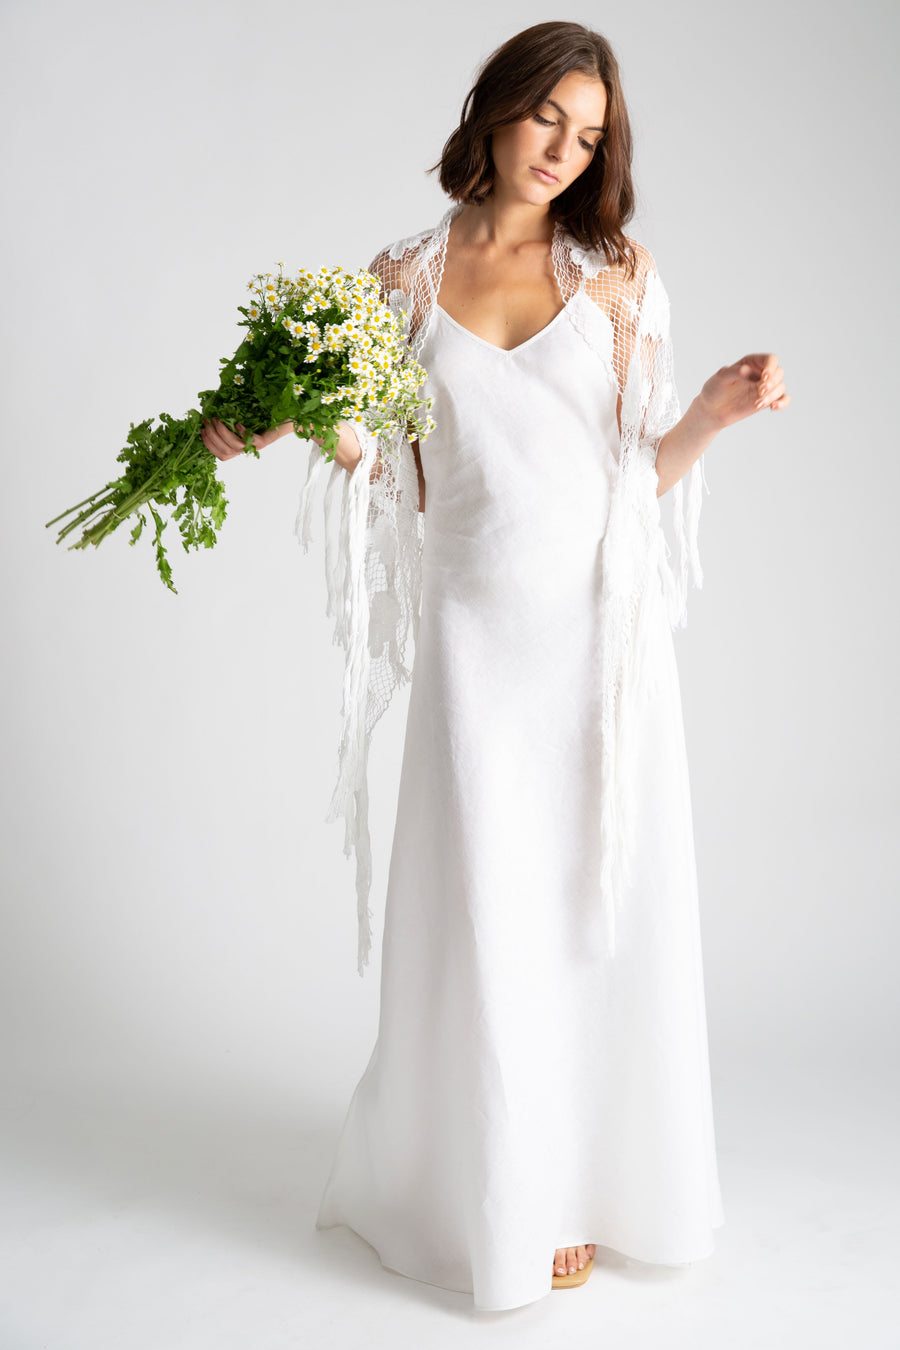 This is a photo of a woman wearing a white linen slip dress with v neck front and side leg slit. Over the slip dress, she wears a white hand knit shawl and holds a bouquet of daisy flowers.